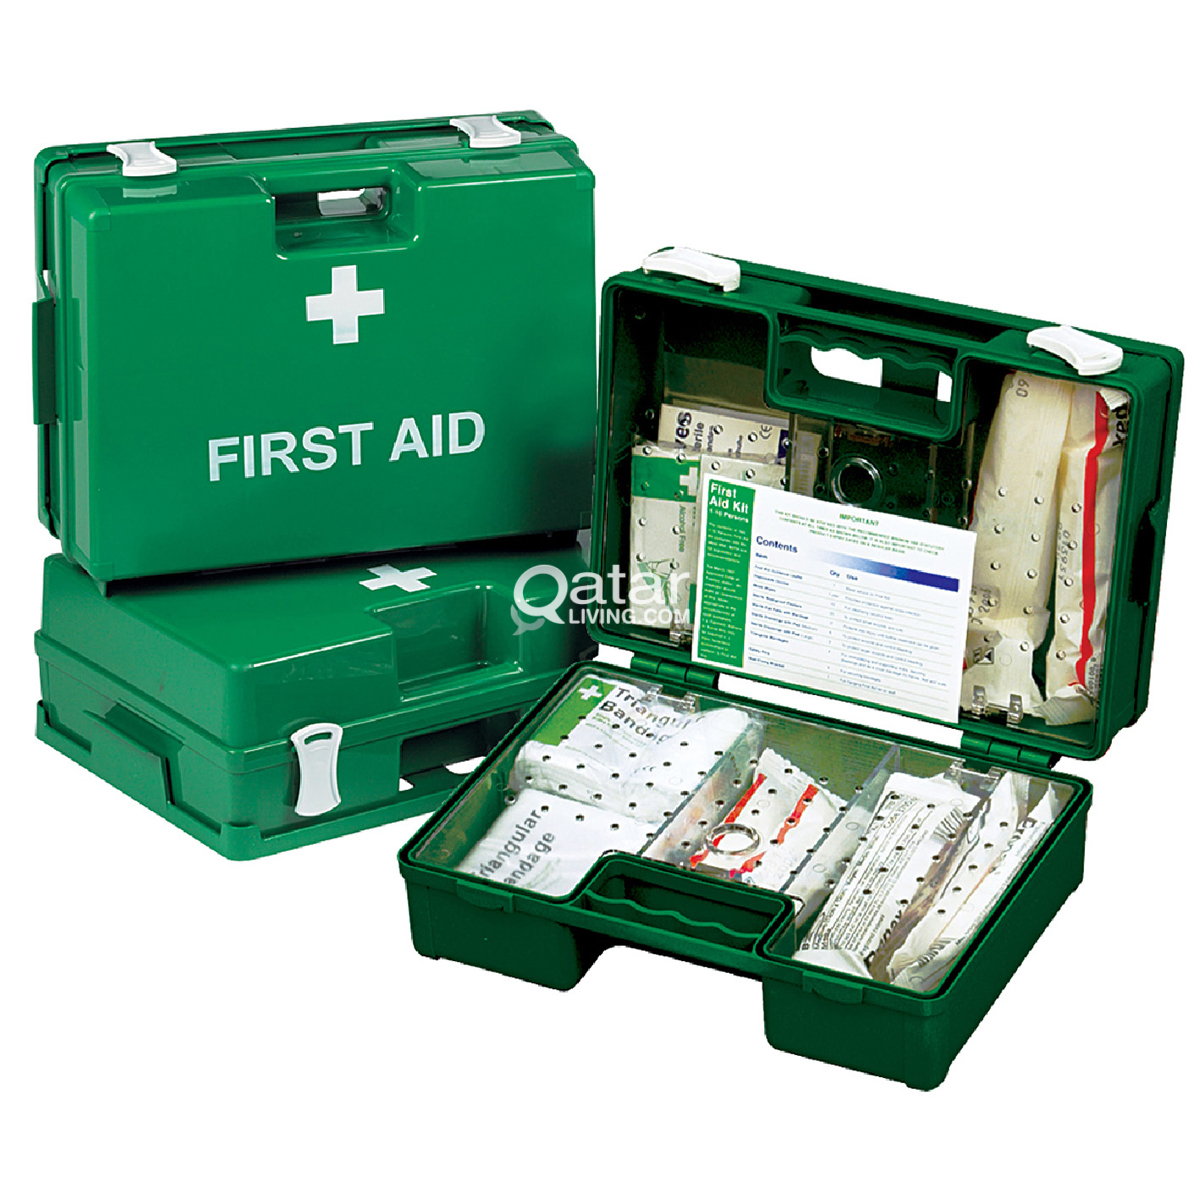 FIRST AID KIT | Qatar Living